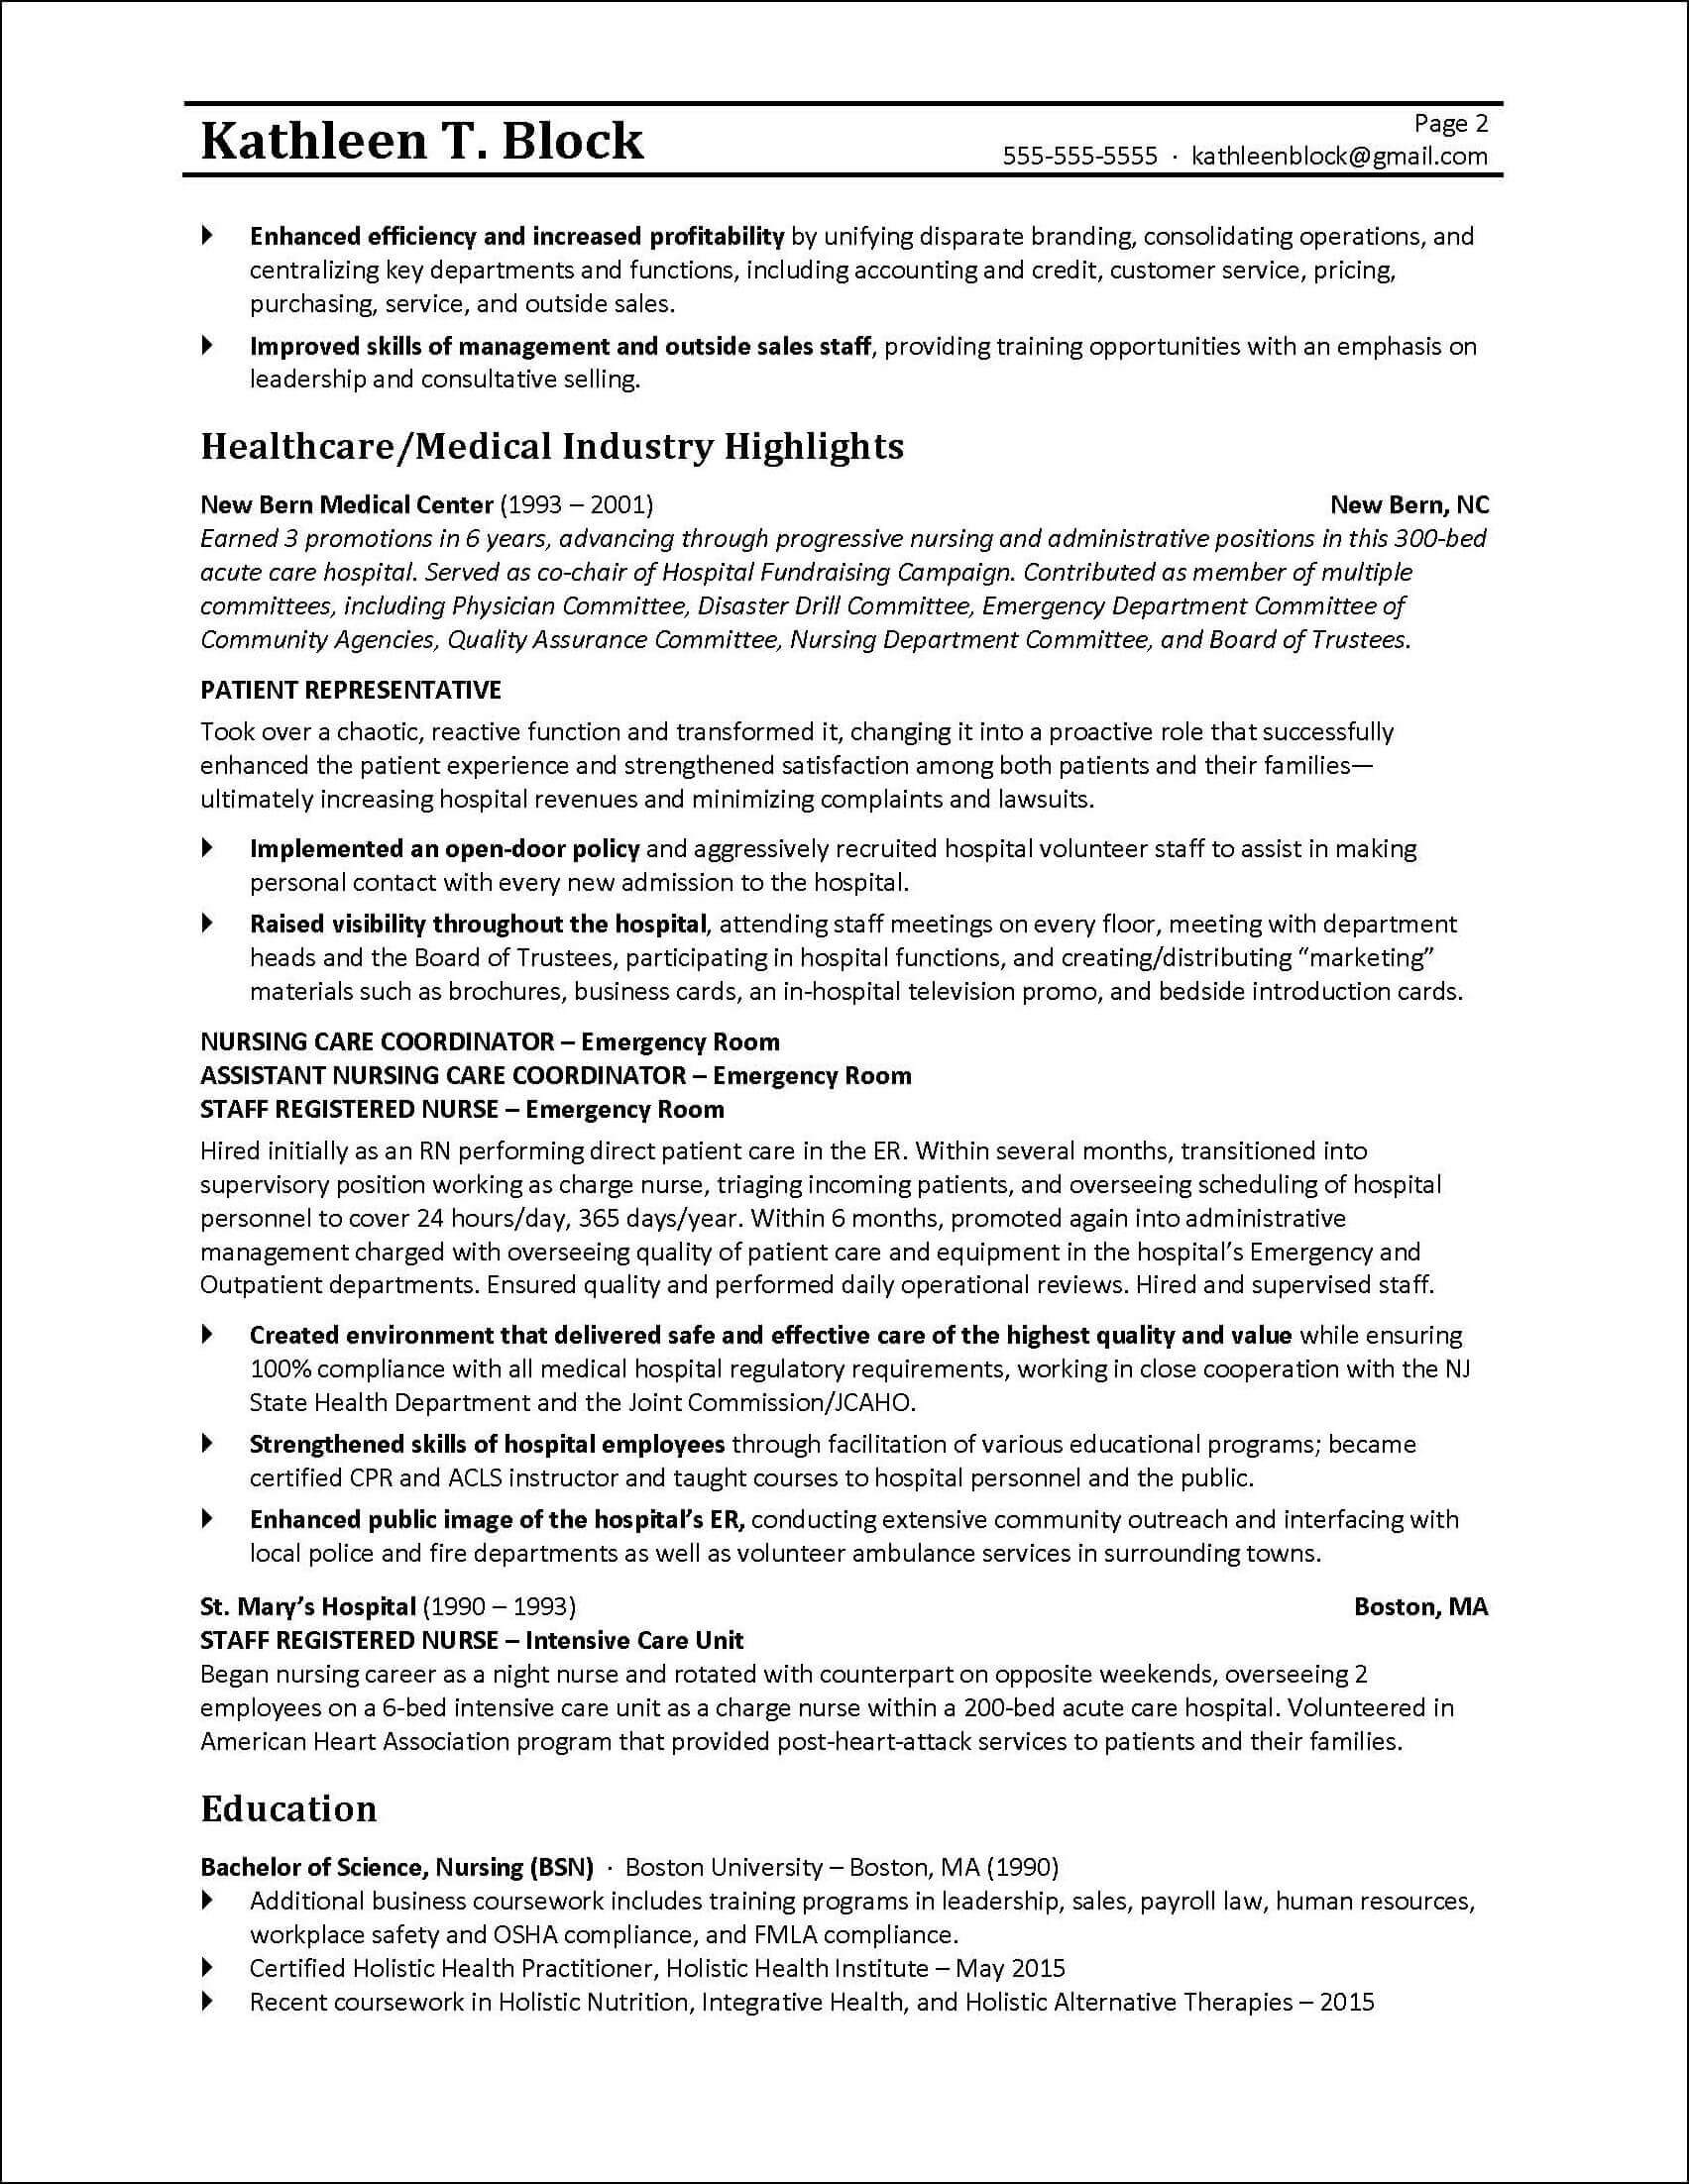 Superb Resume Tips: 2nd Page Of A Resume Written For A Former Business Owner On Business Owner Job Description For Resume